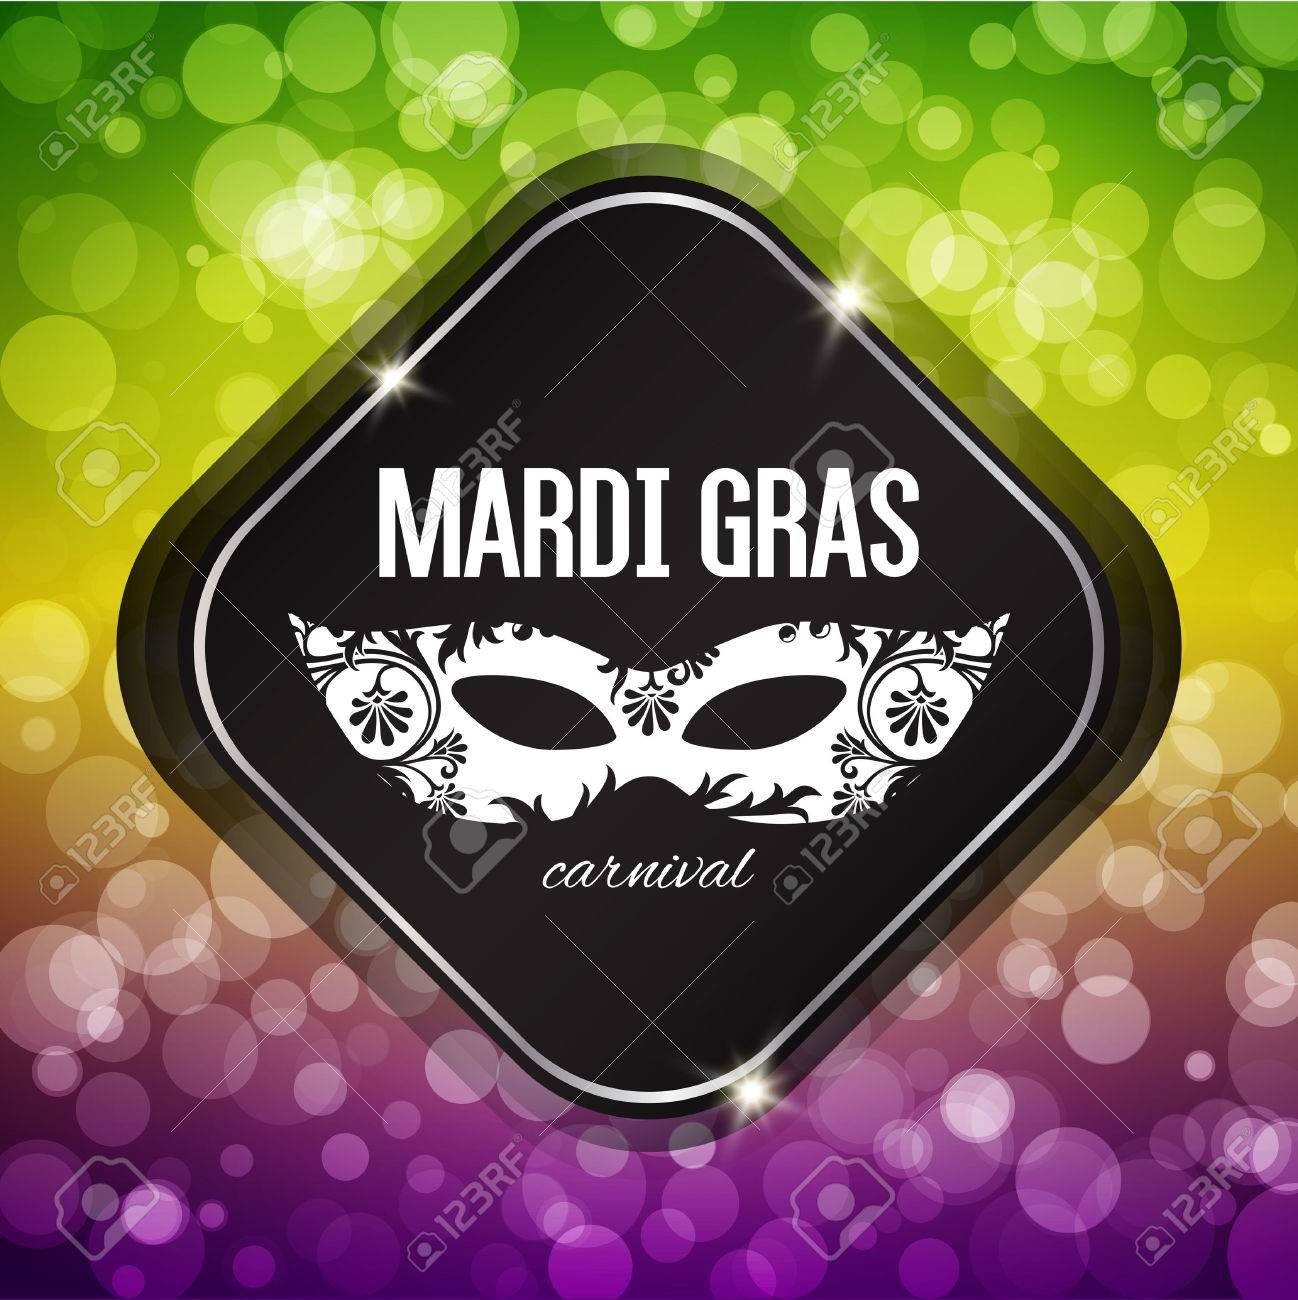 Mardi Gras carnival background with masquerade mask silhouette - 50483262